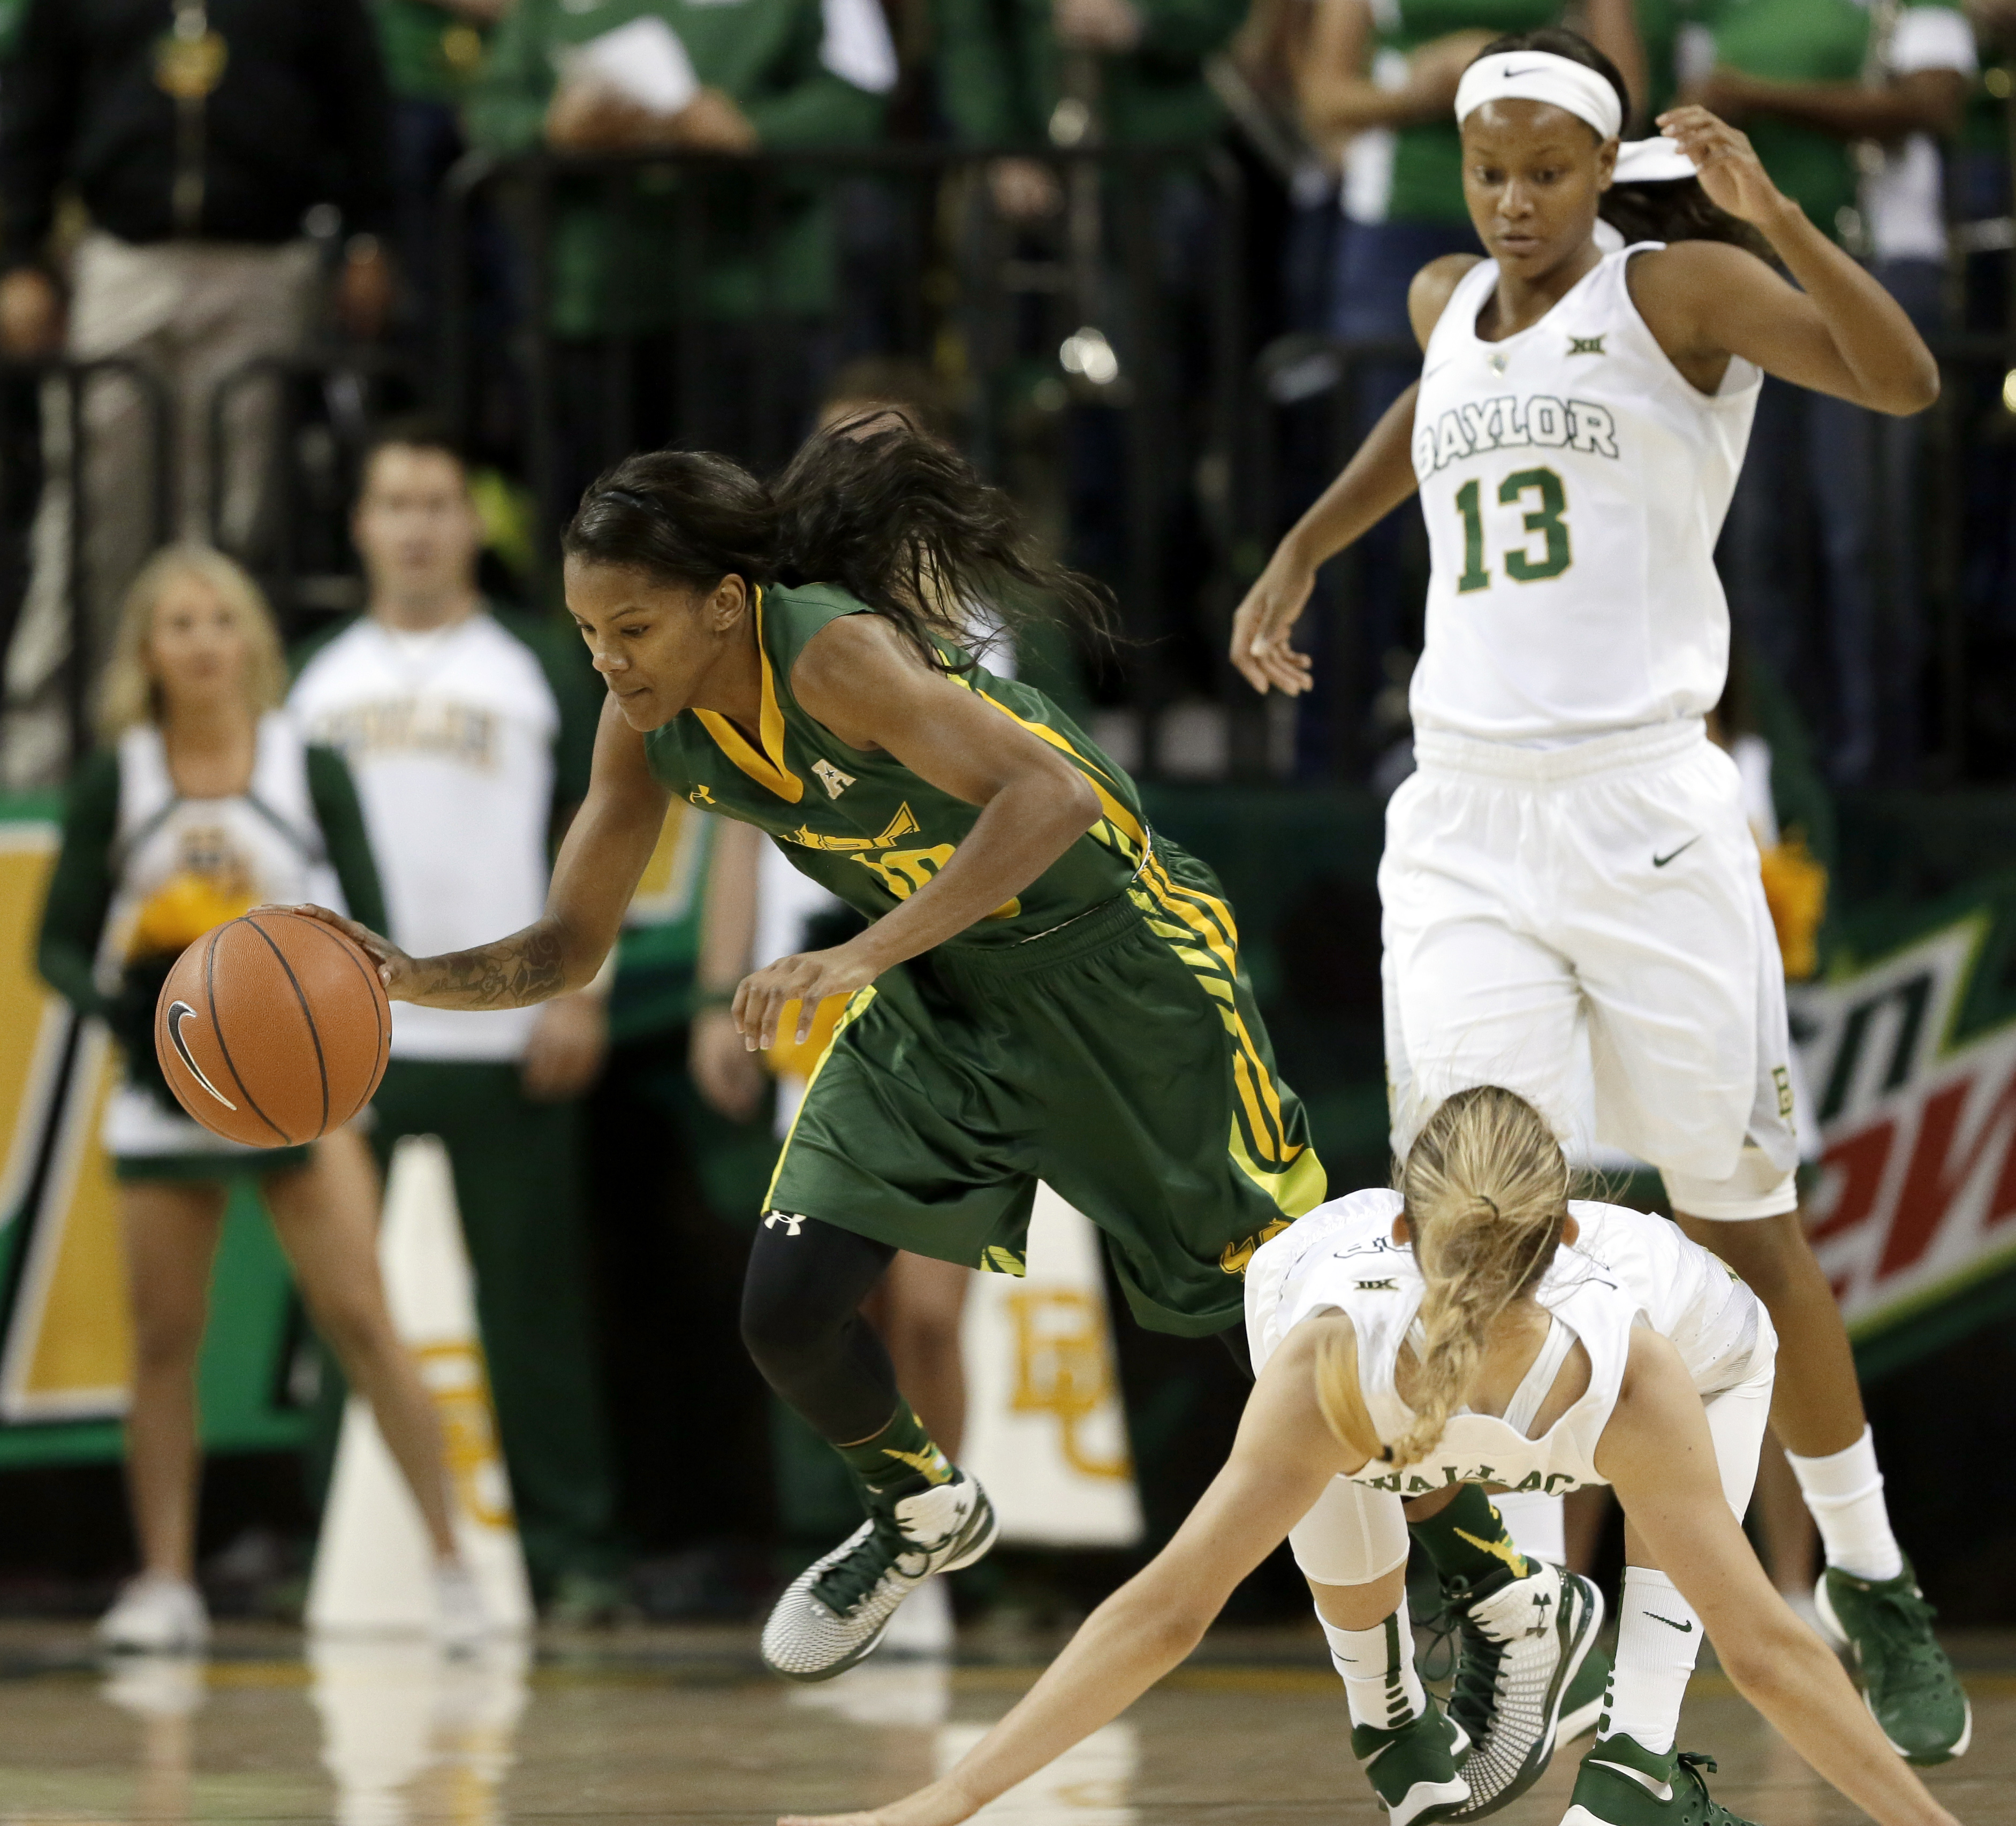 South Florida's Courtney Williams (10) collides with Baylor's Kristy Wallace, ending her to the floor as Williams moves the ball up the court during the first half of an NCAA college basketball game, Thursday, Nov. 19, 2015, in Waco, Texas. Baylor's Nina